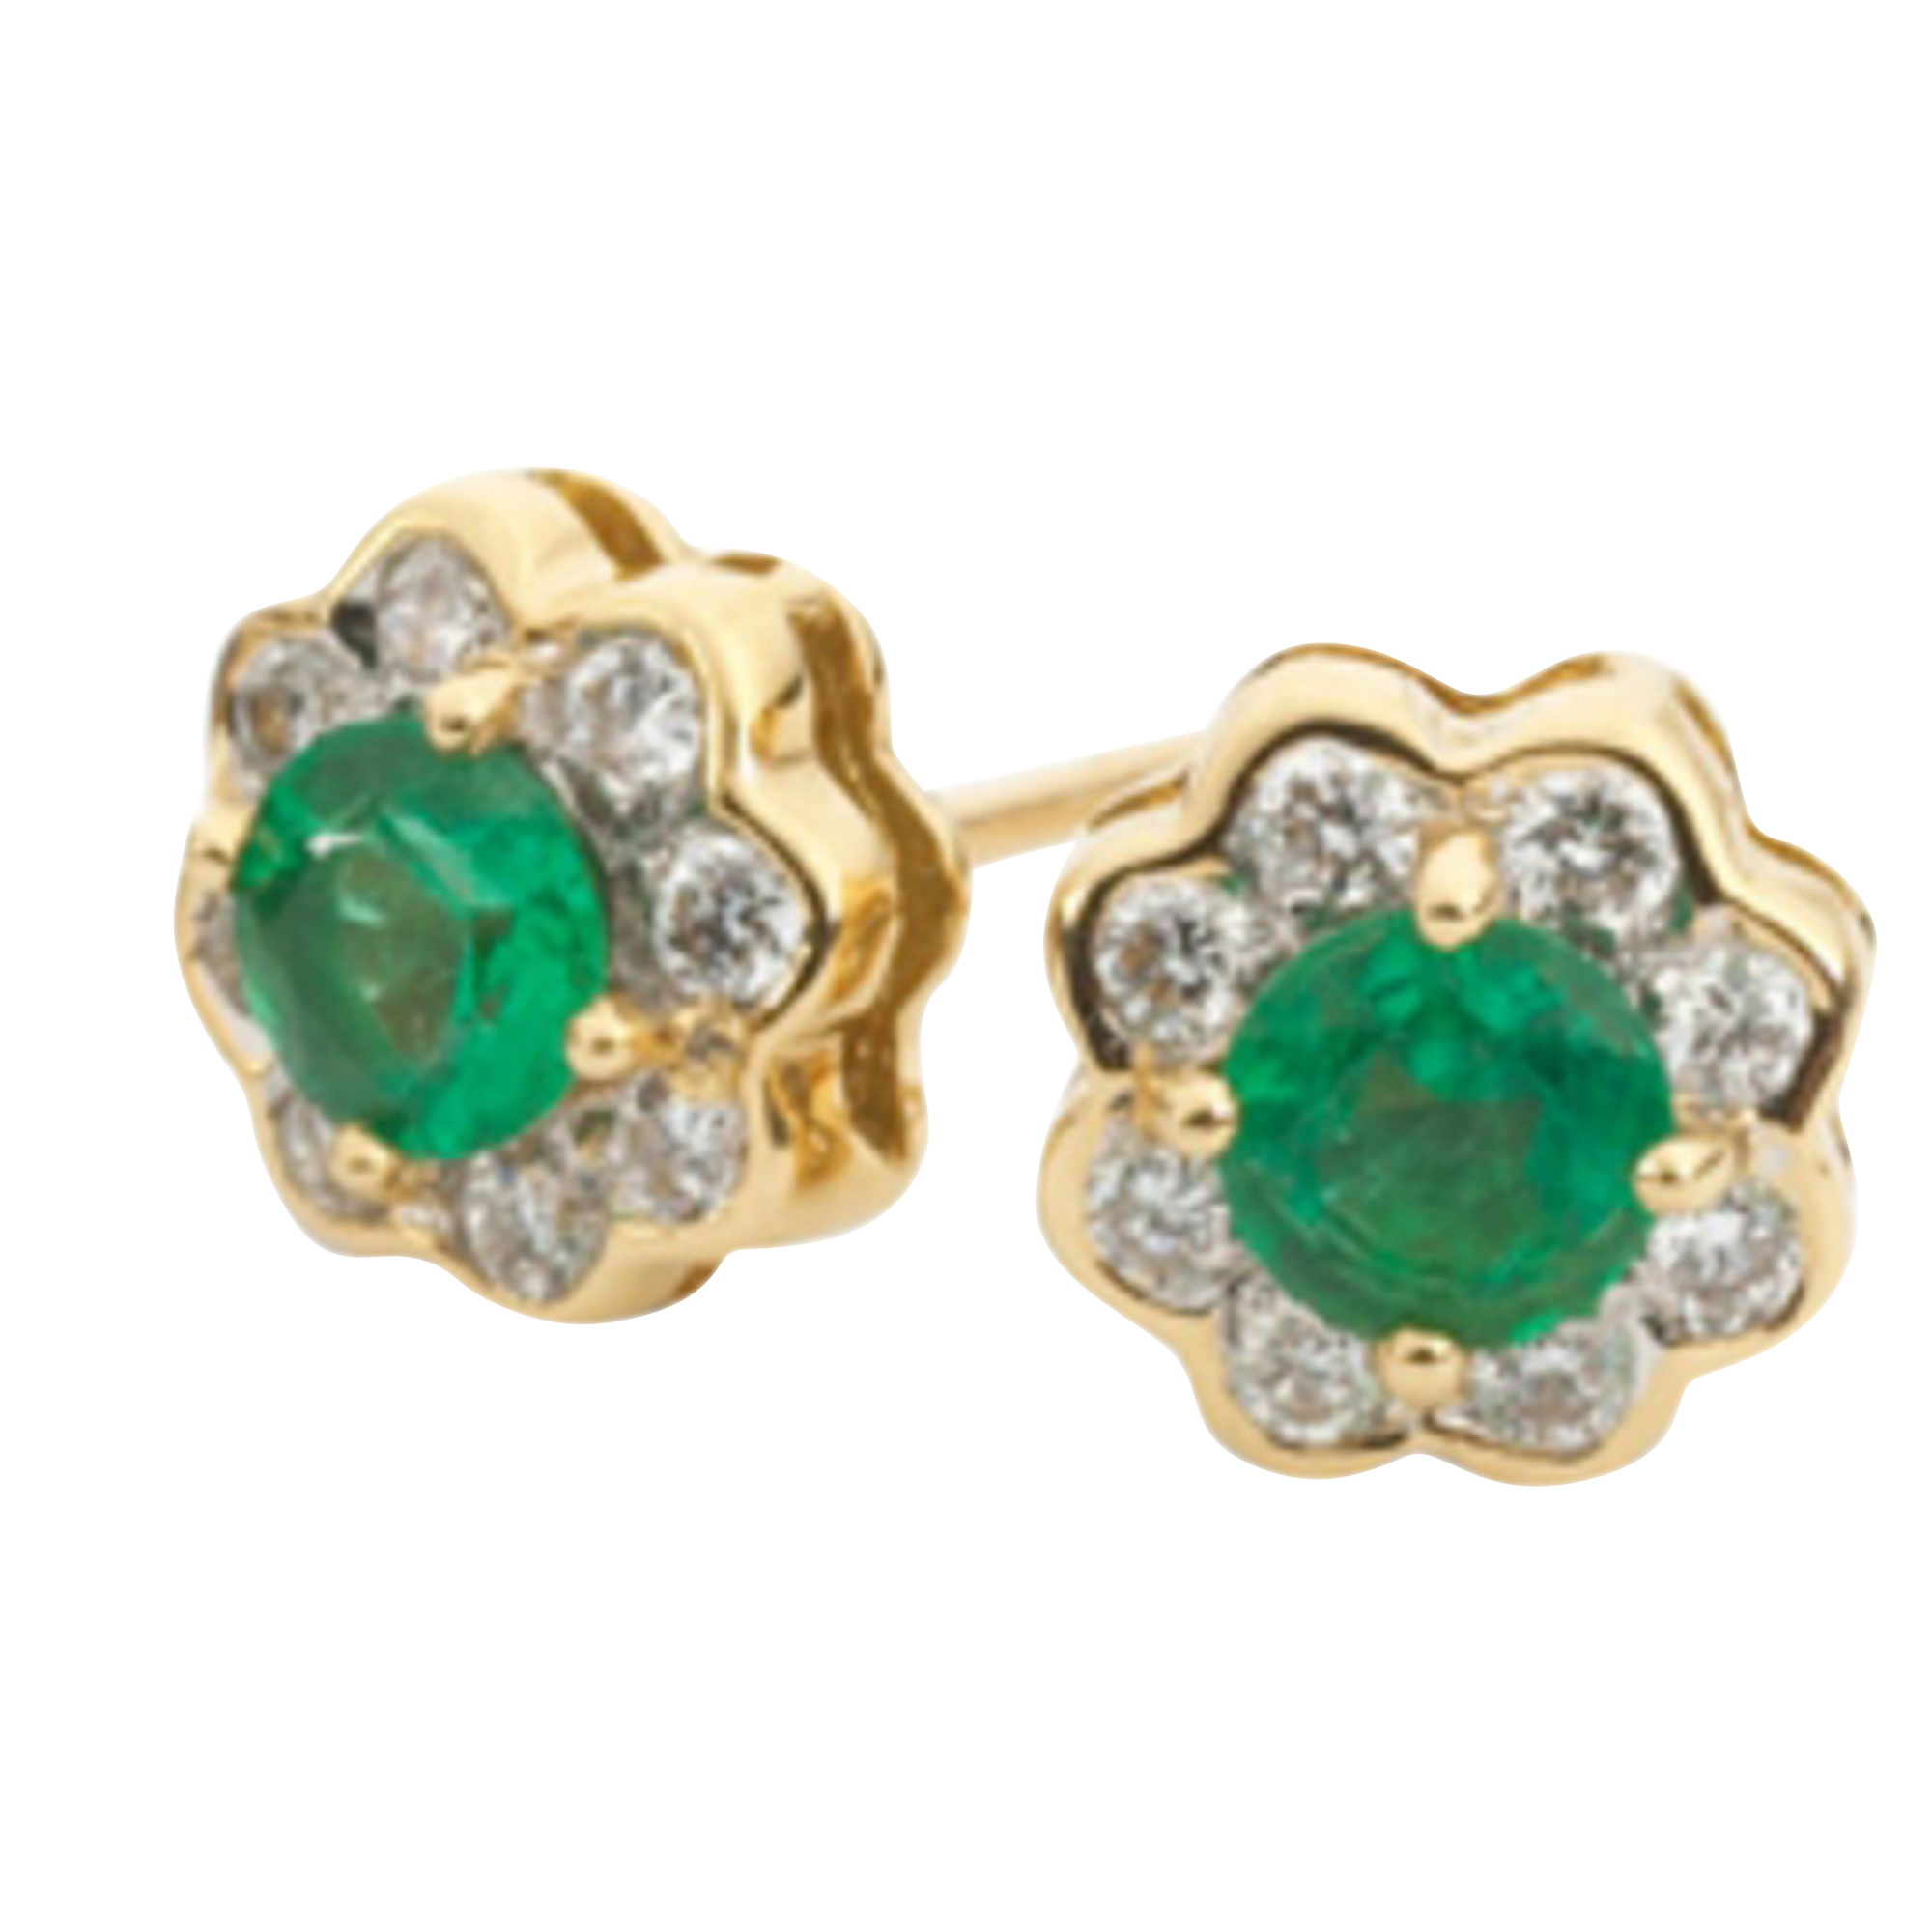 Emerald & Diamond 18ct Yellow Gold Cluster Stud Earrings